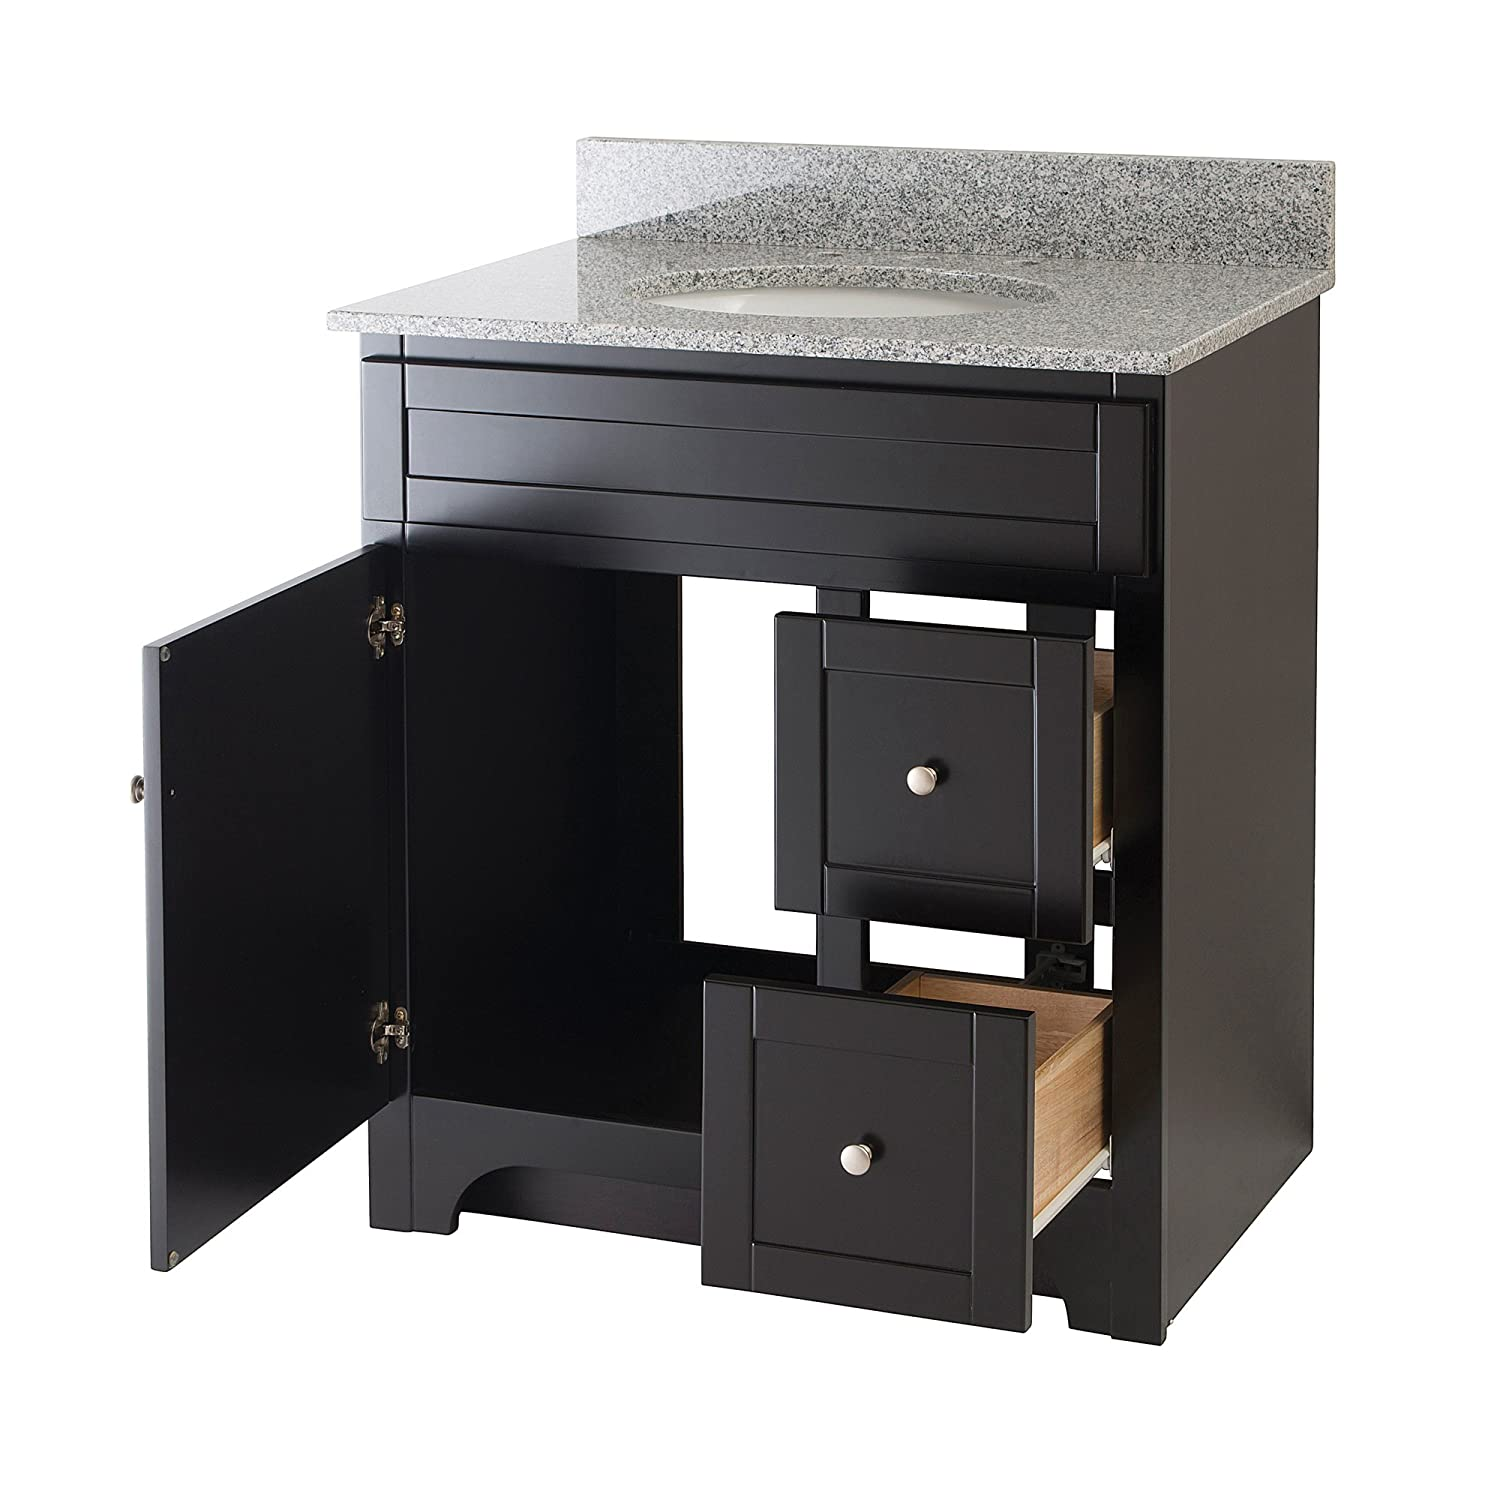 30 inch bathroom vanity with sink. Amazon com  Foremost WREAT3021D 8M Worthington 30 Inch Espresso Bathroom Vanity with Meteorite Gray Granite Top and White Vitreous China Sink Home